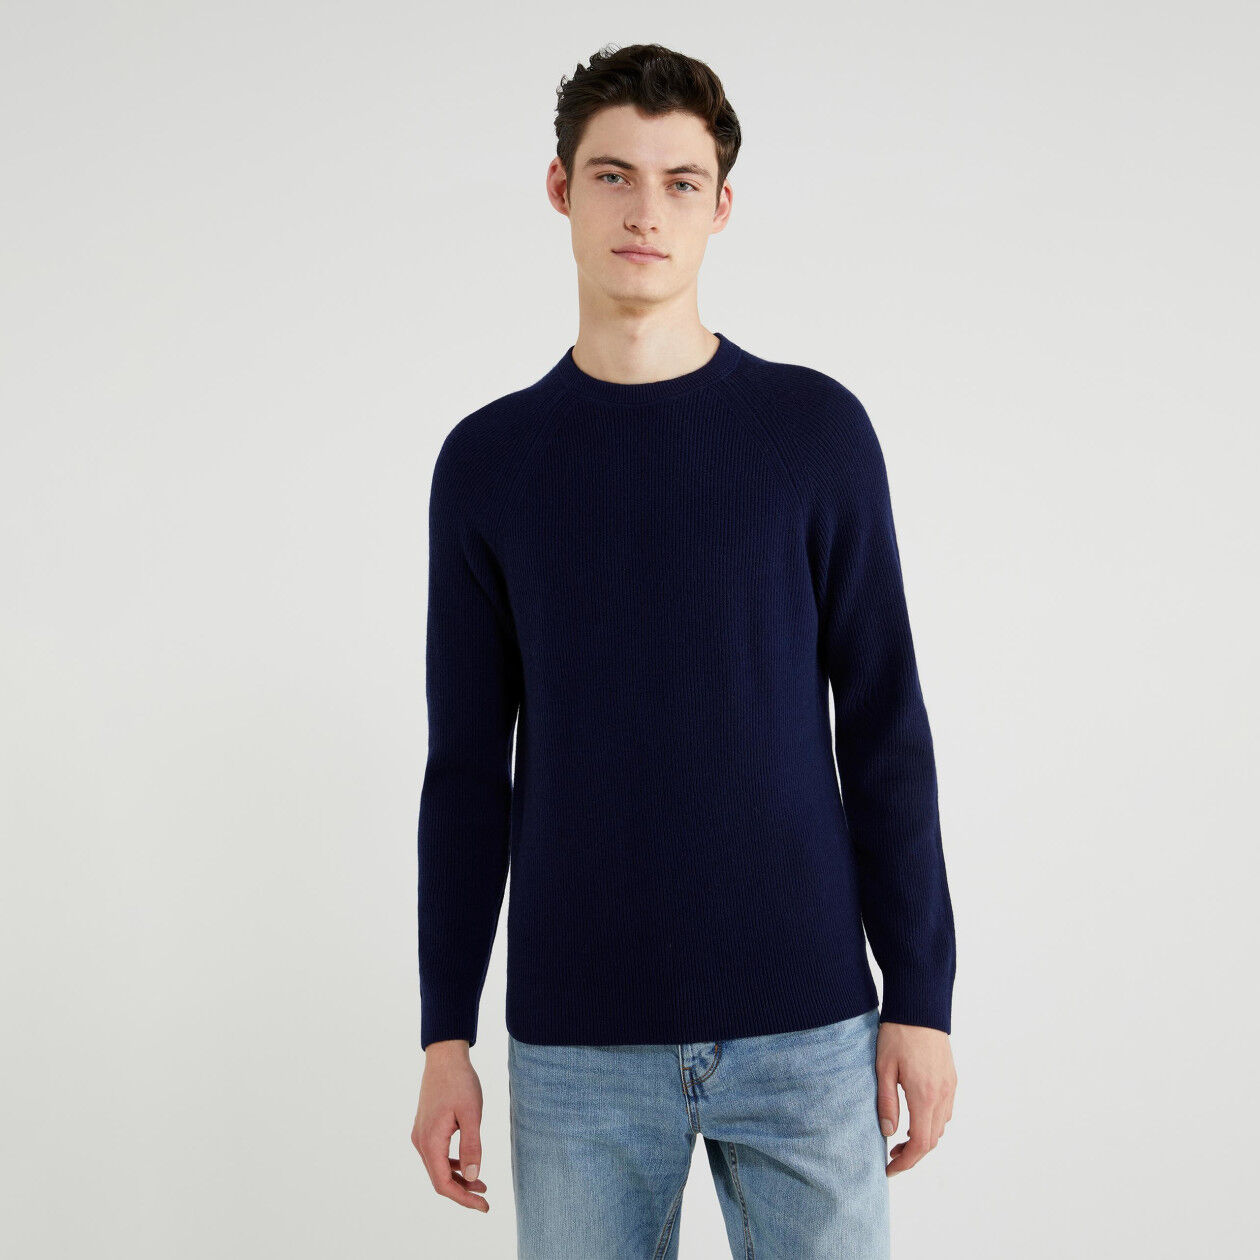 Sweater in wool and cashmere